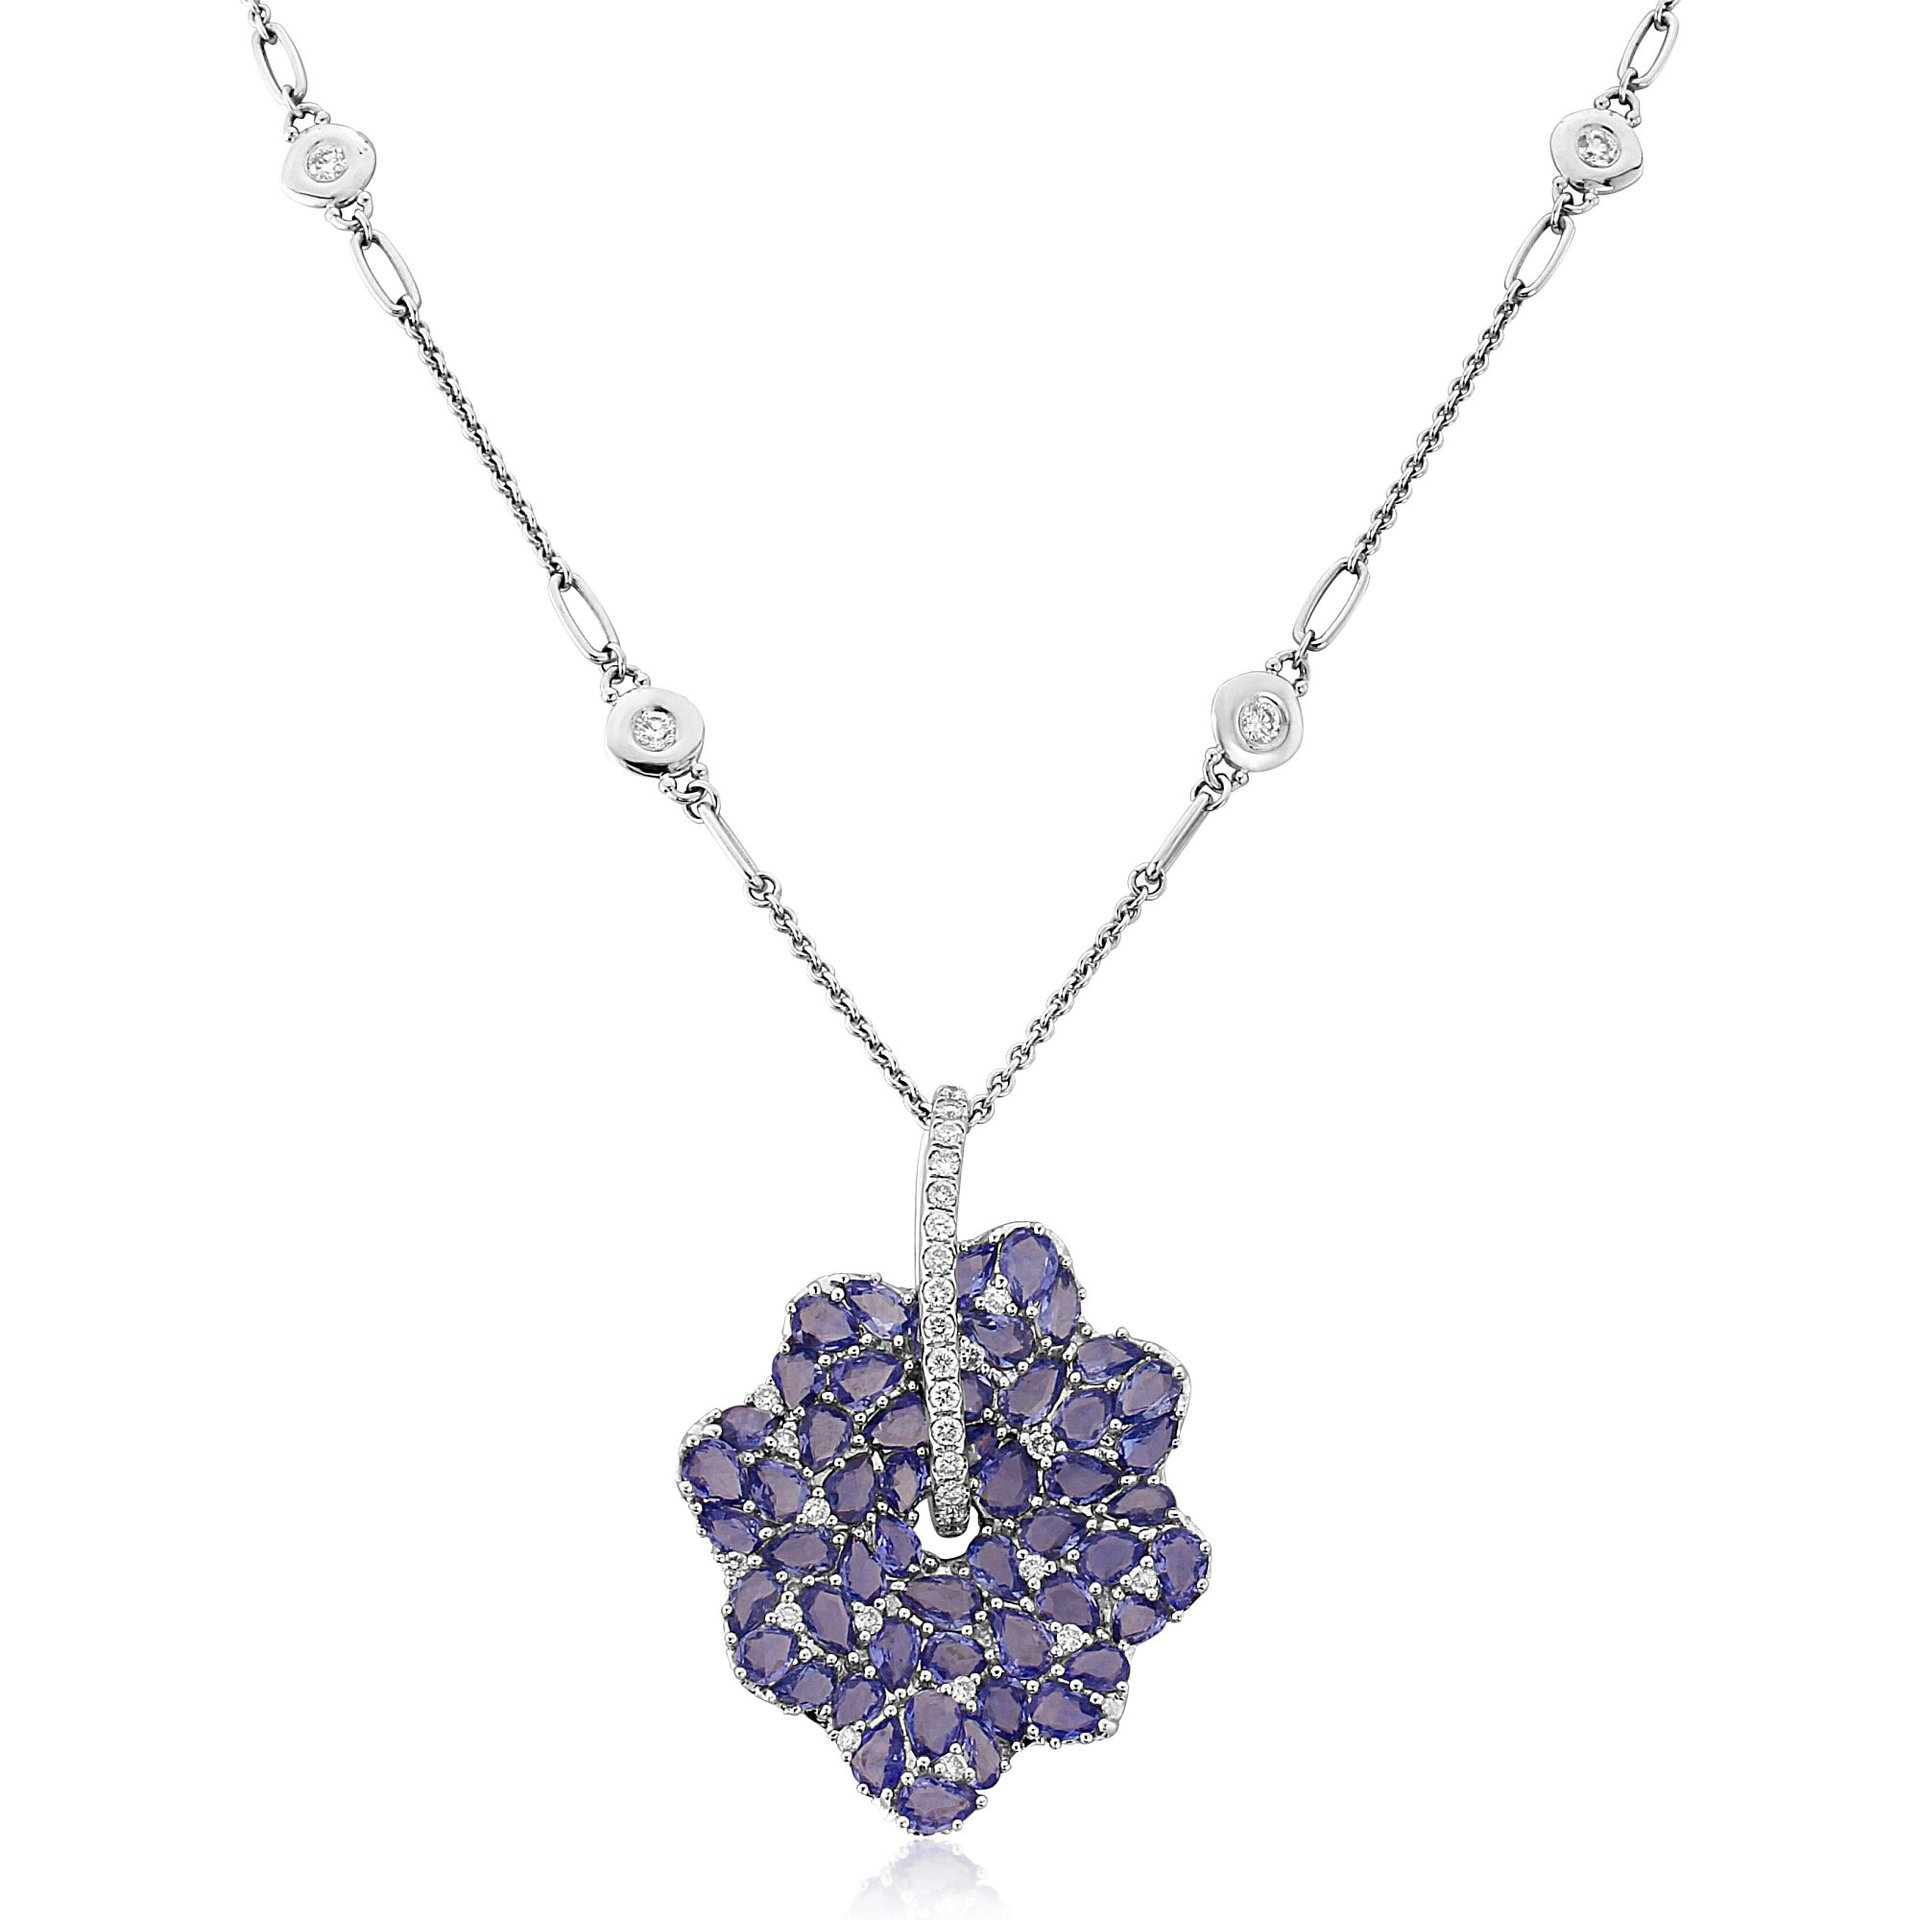 18ct White Gold Sapphire and Diamond Pendant and Chain